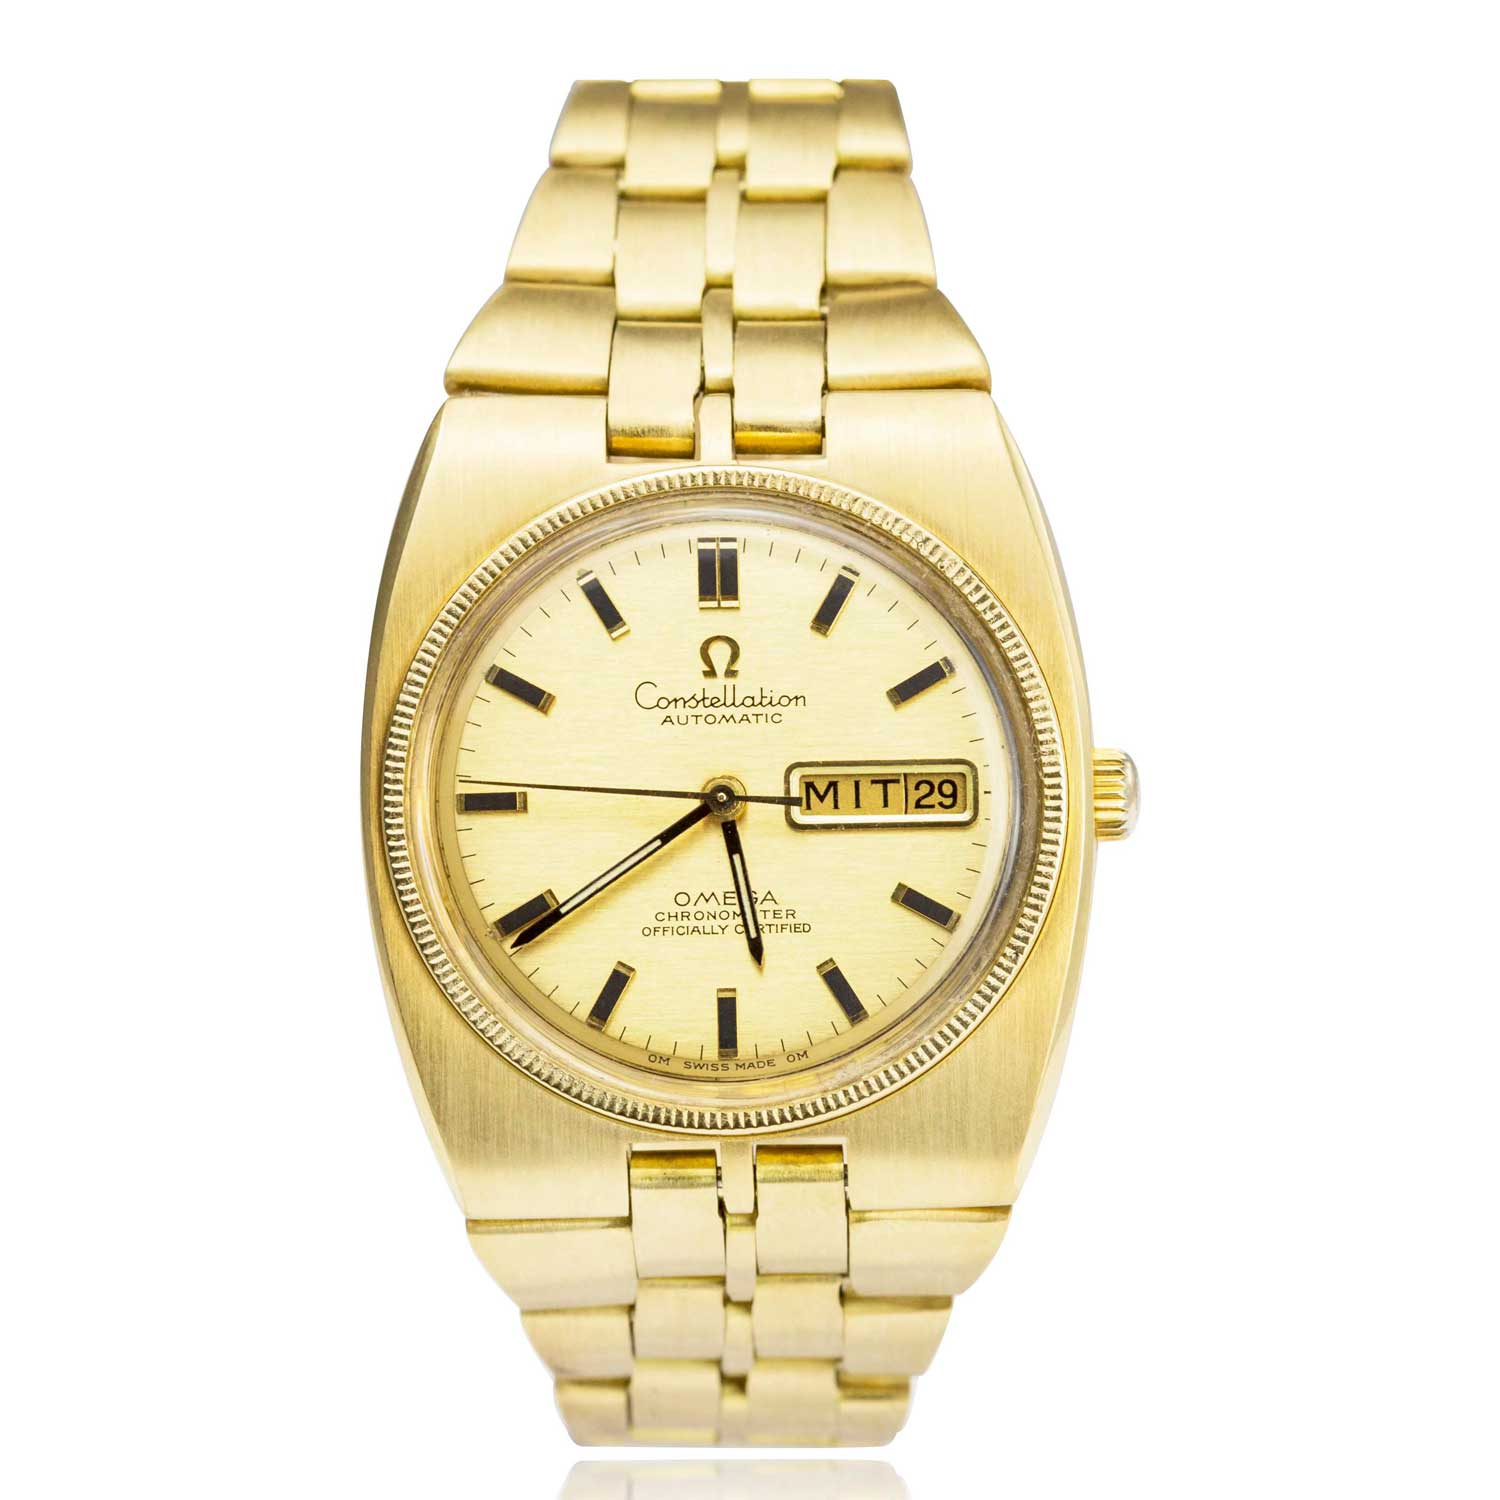 Omega Constellation reference 168.045, released in 1969